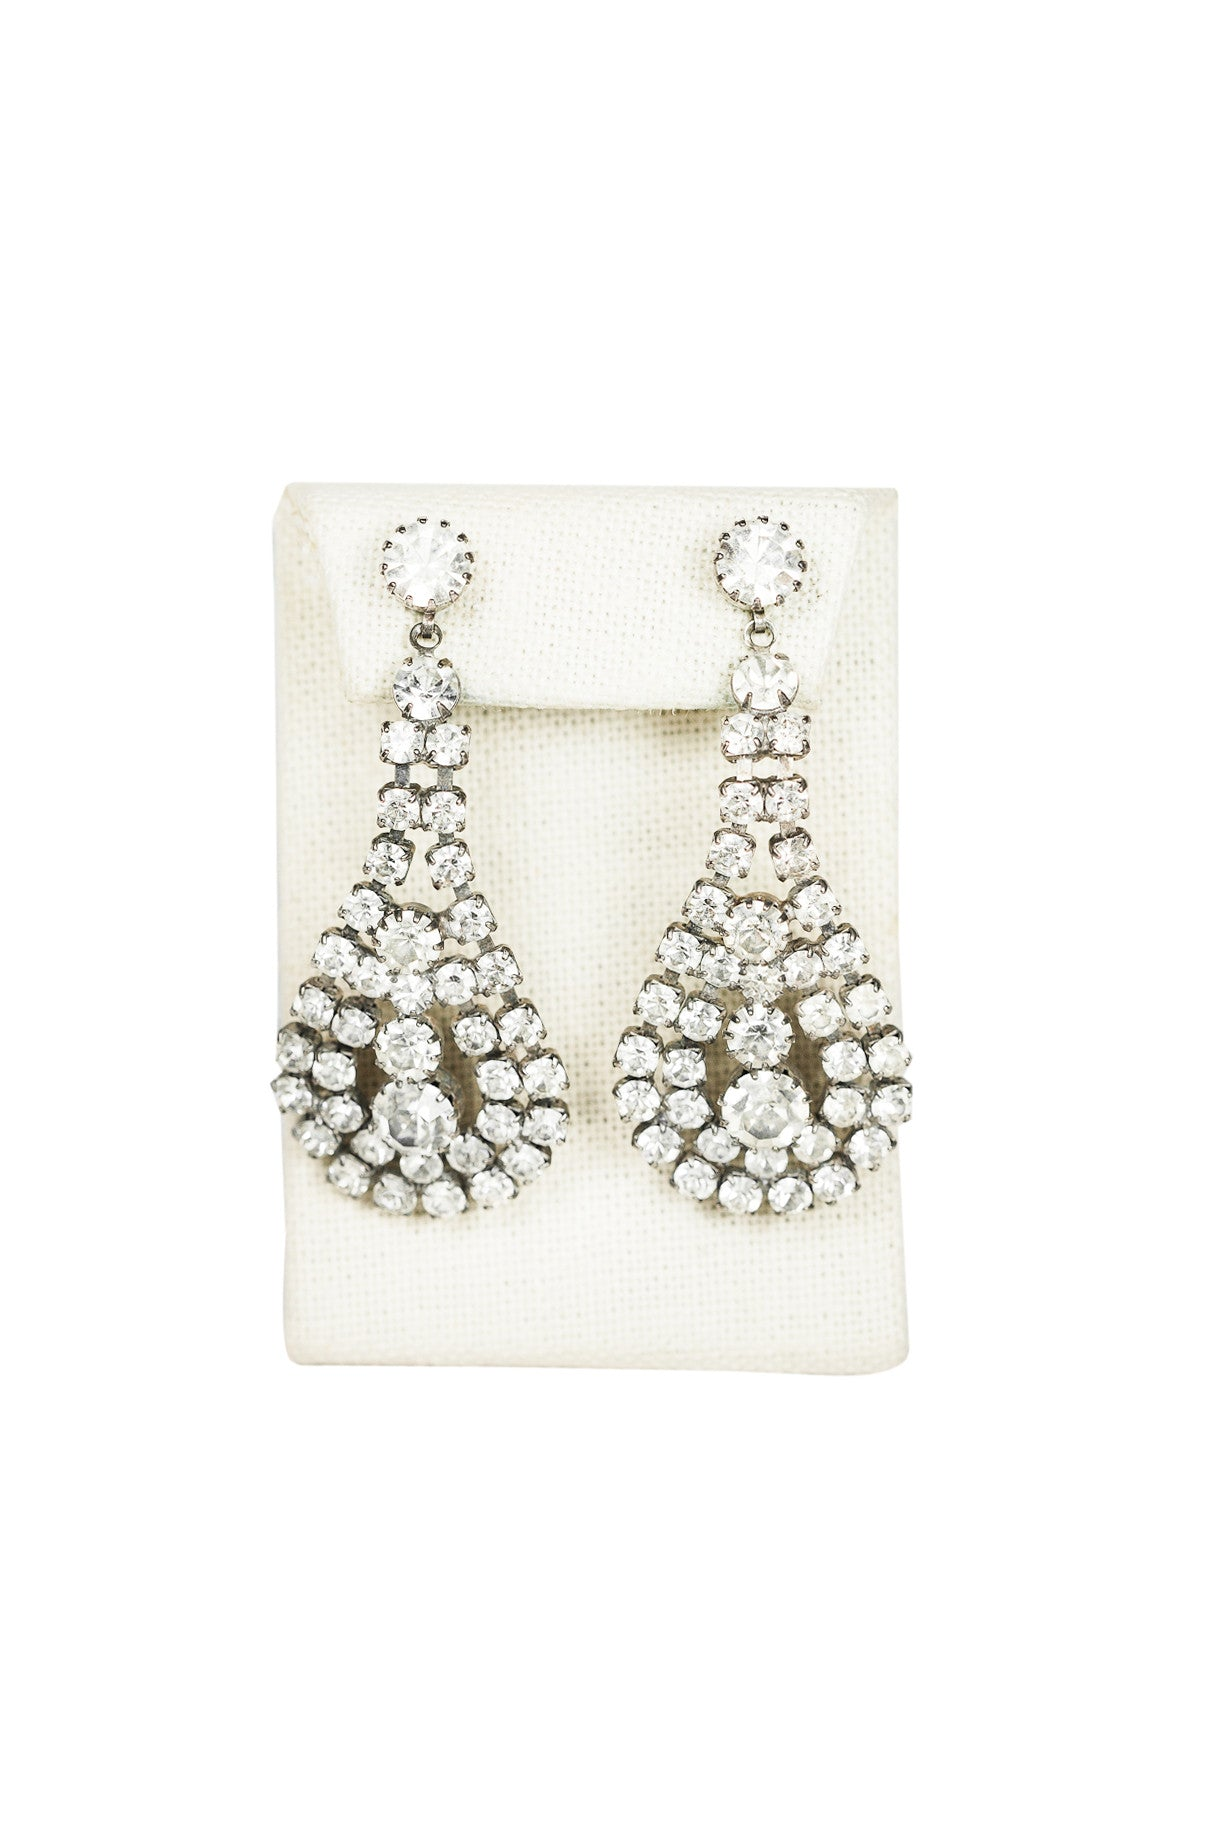 70's__Vintage__Rhinestone Shoulder Duster Earrings